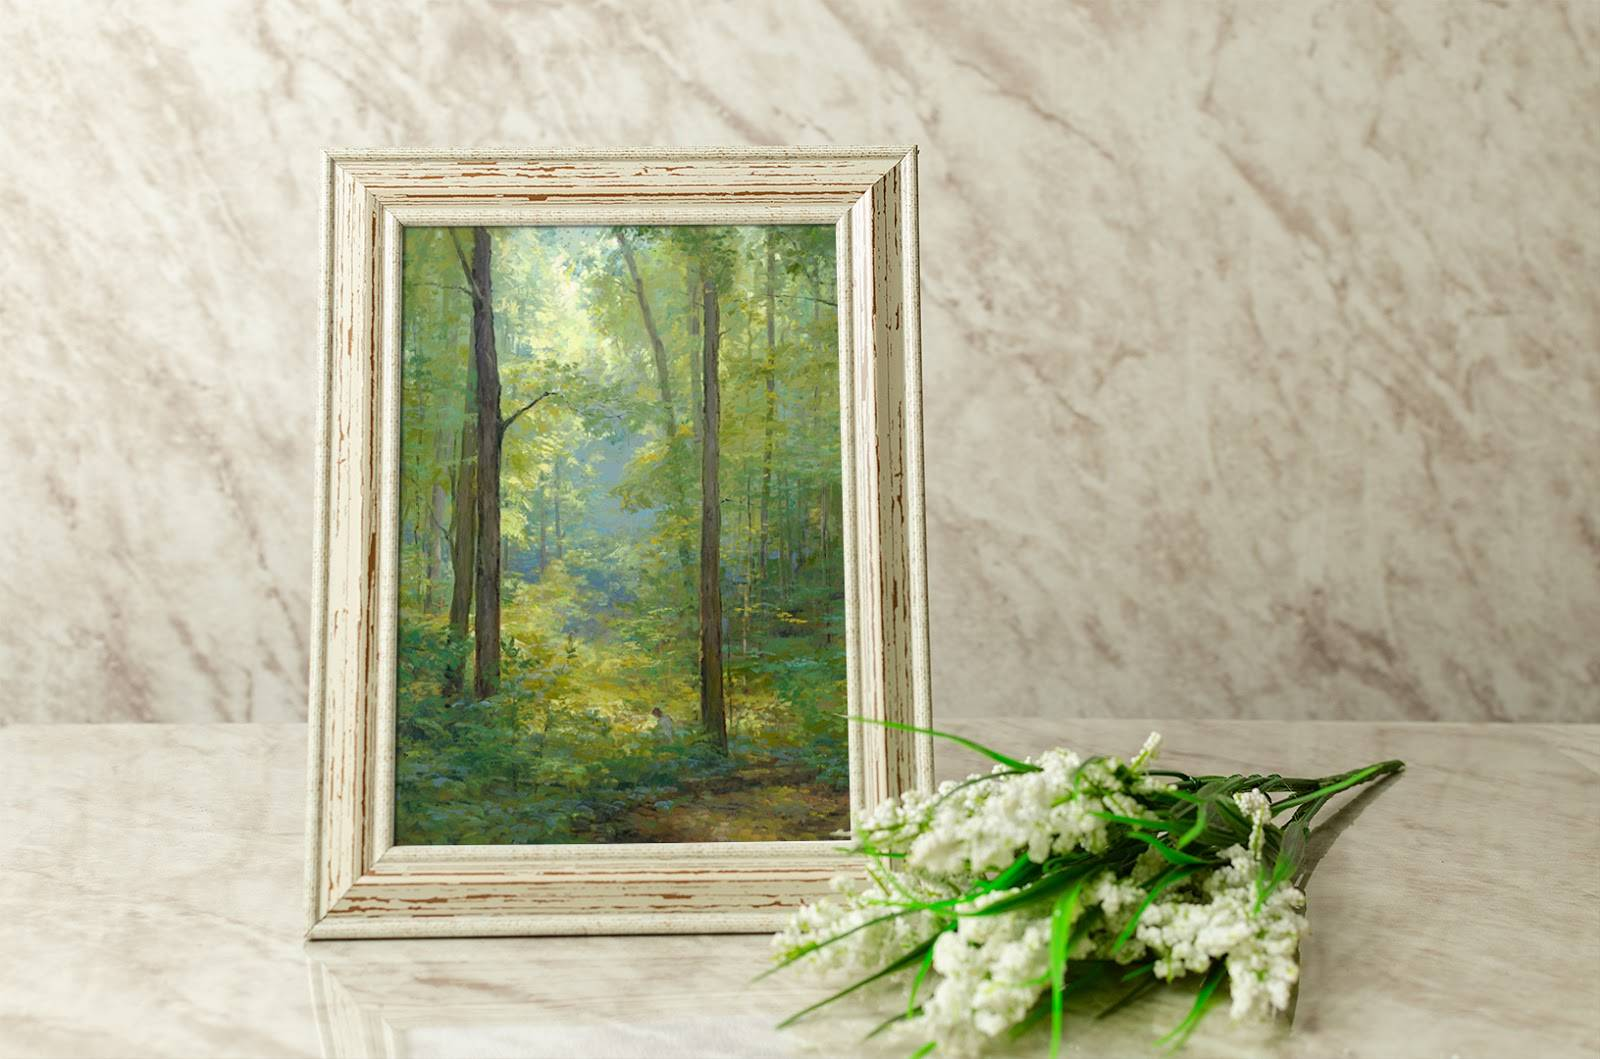 Small art of the Sacred Grove next to a bouquet of white flowers.